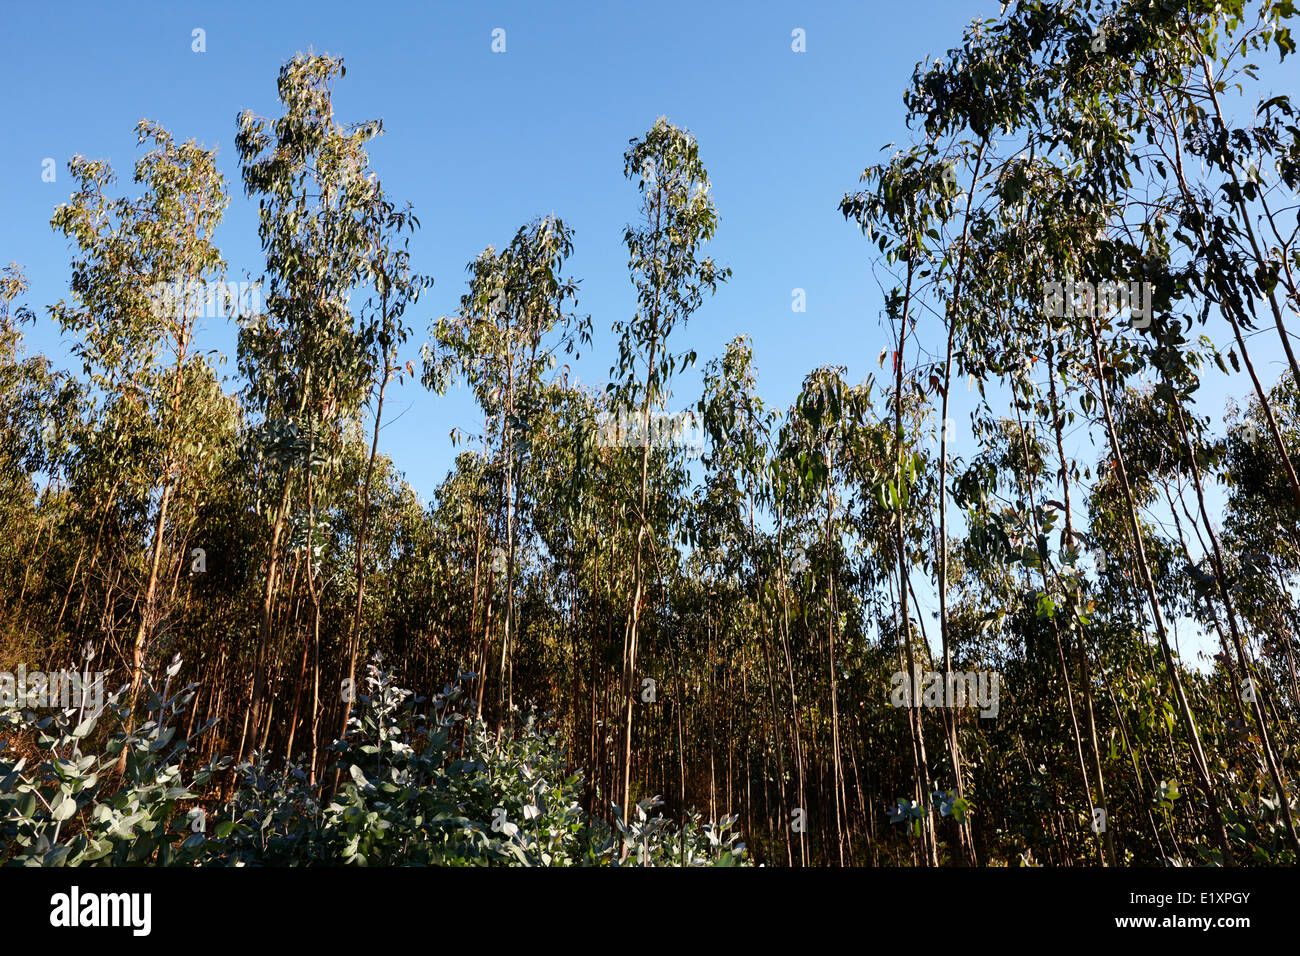 eucalyptus forest los pellines chile Stock Photo